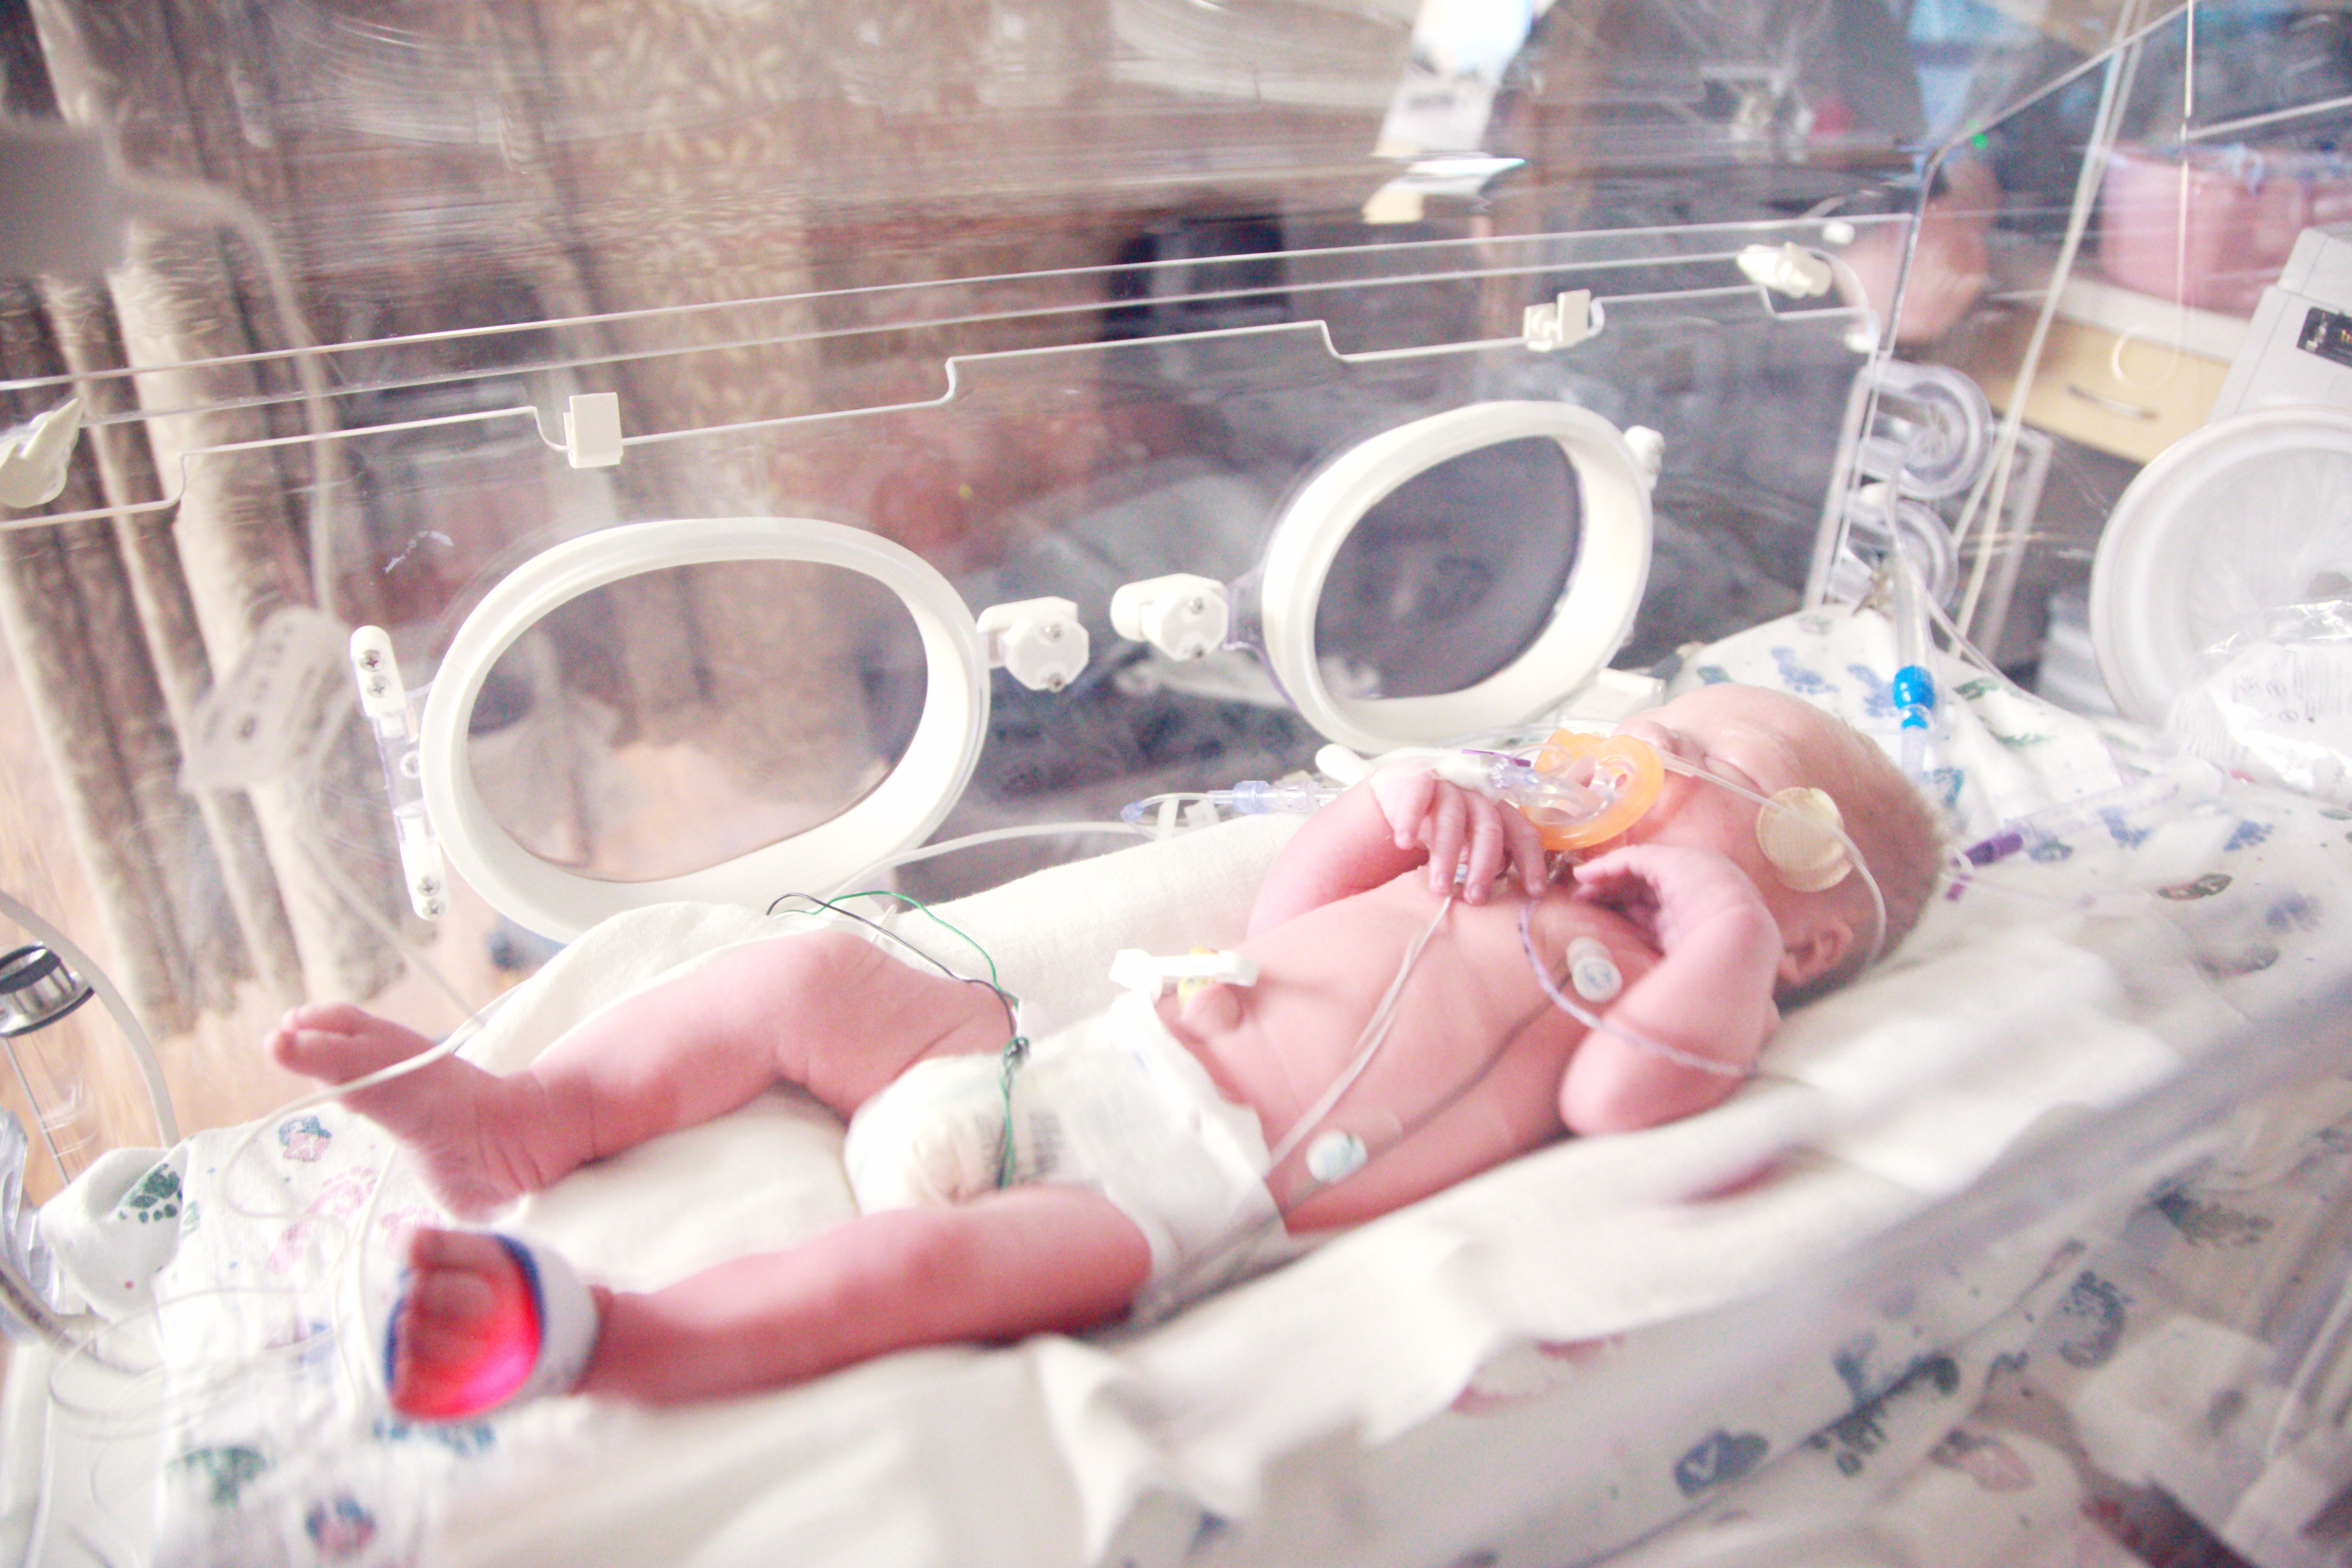 Doctors Perform C-Section When Condition Of 27-Year-Old ...